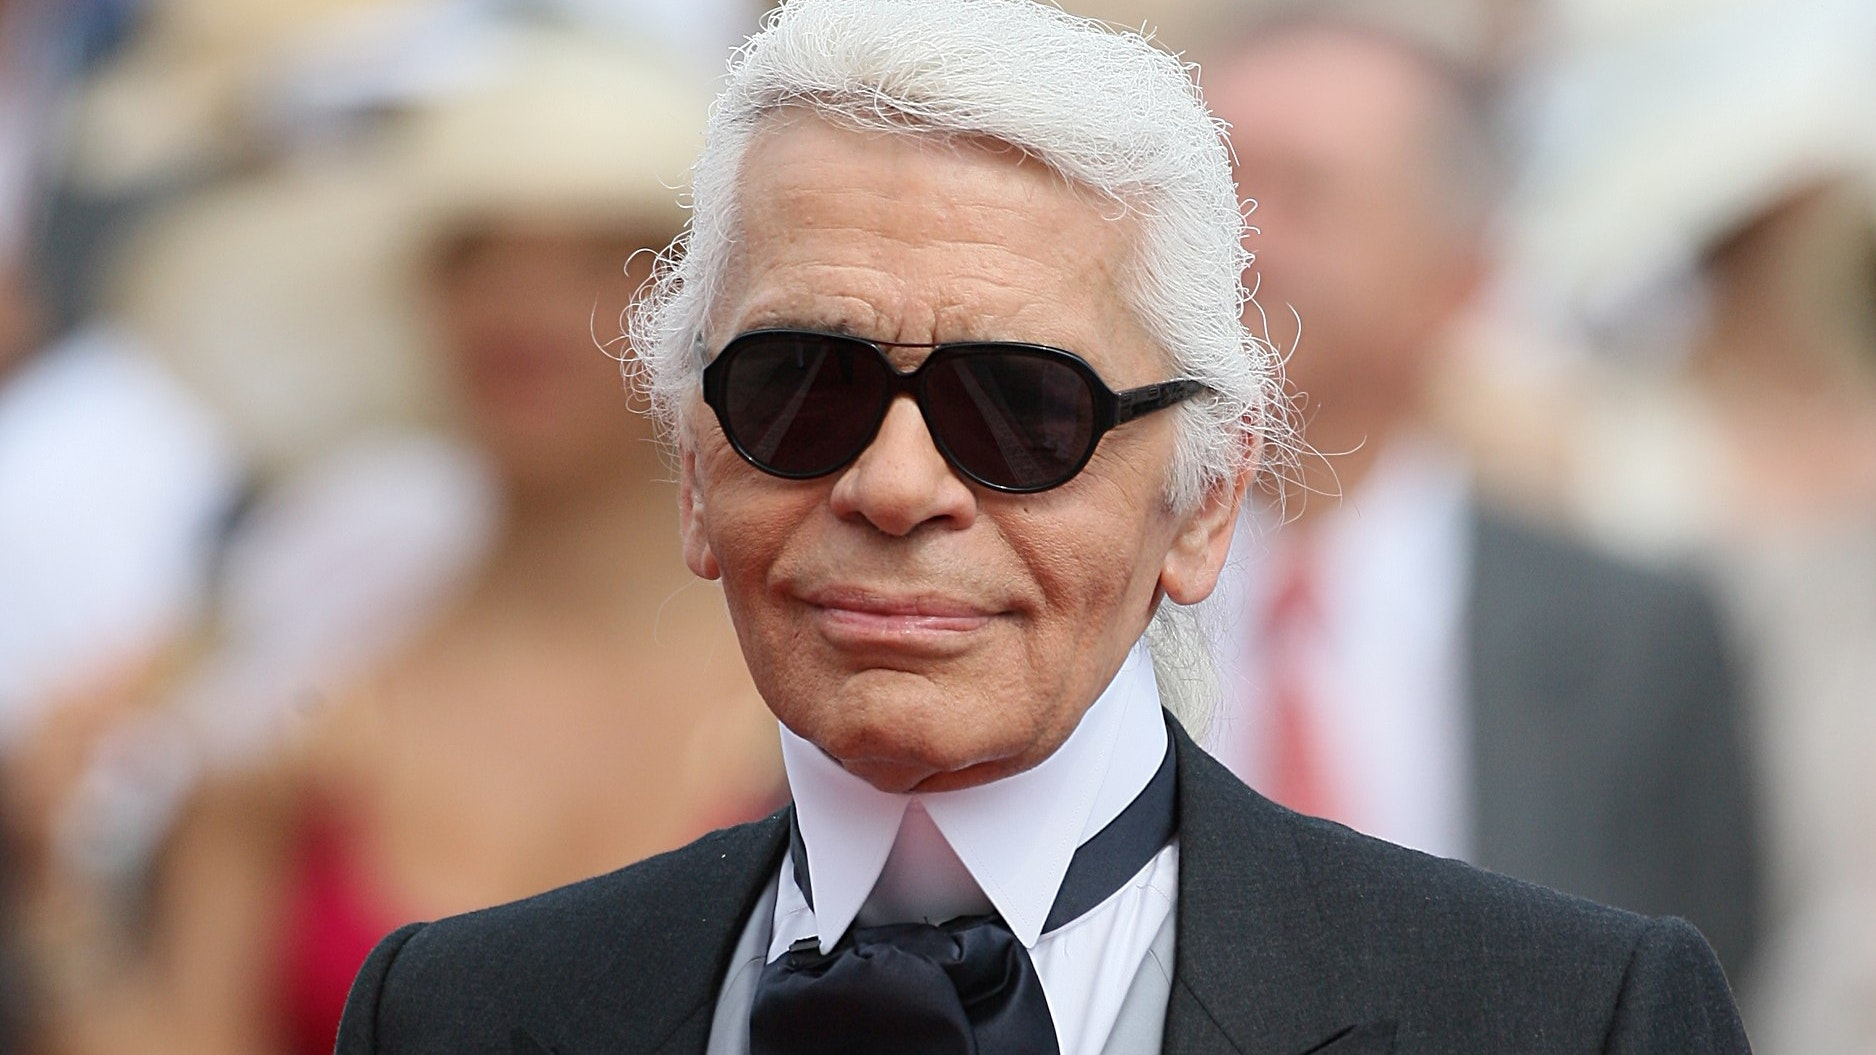 legendary-fashion-designer-karl-lagerfeld-dies-in-paris-at-85-years-old